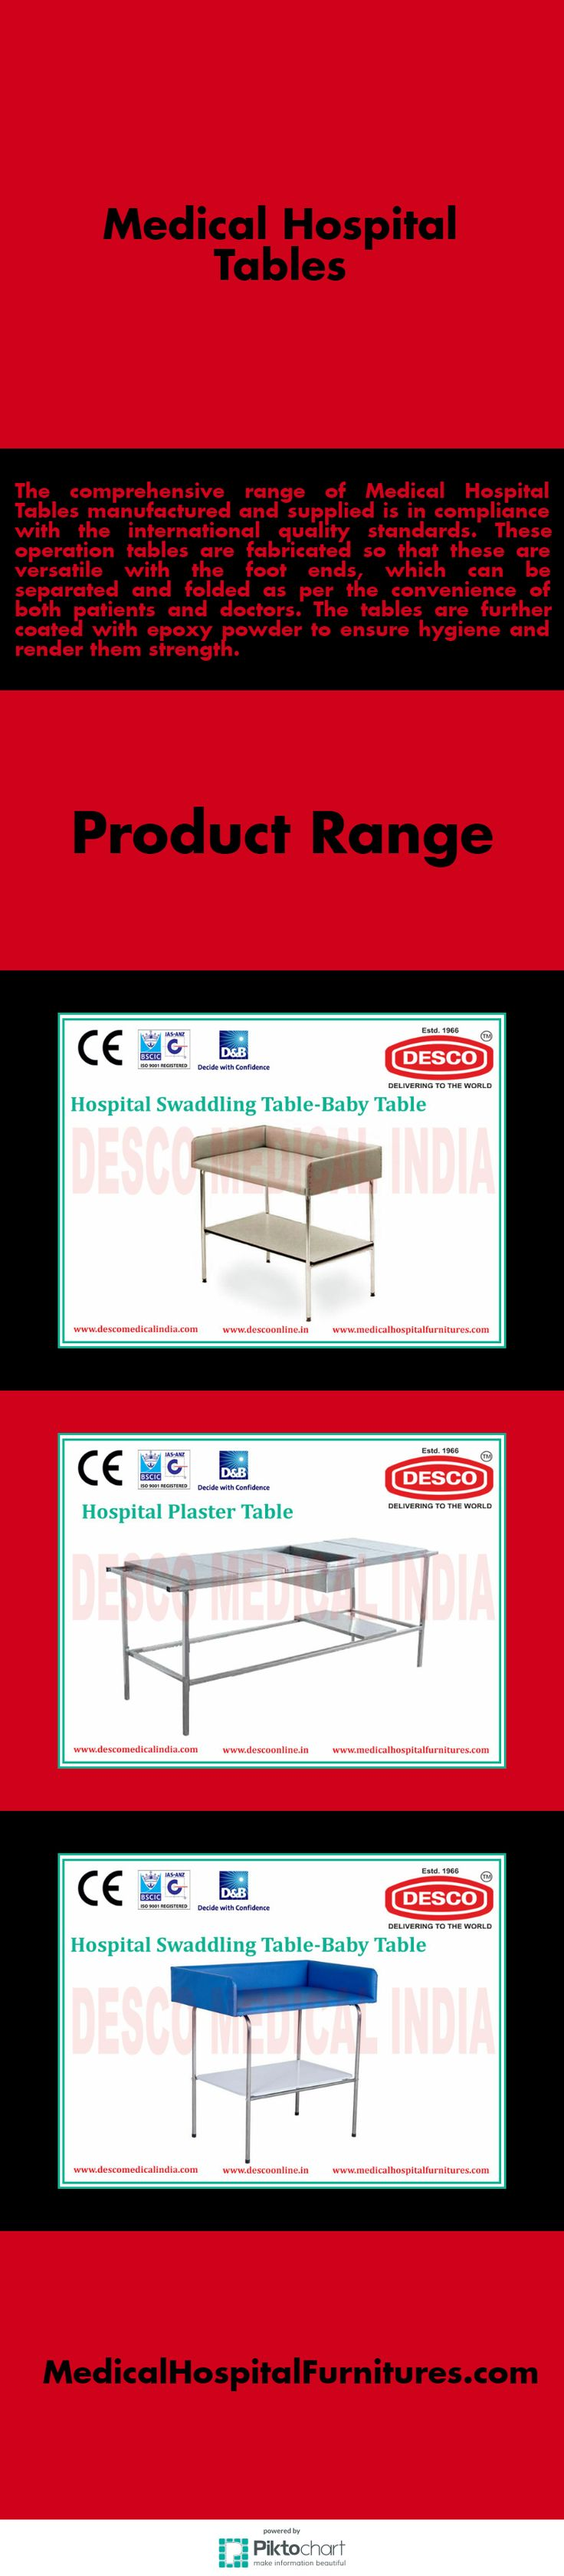 The comprehensive range of Medical Hospital Tables manufactured and supplied is in compliance with the international quality standards.